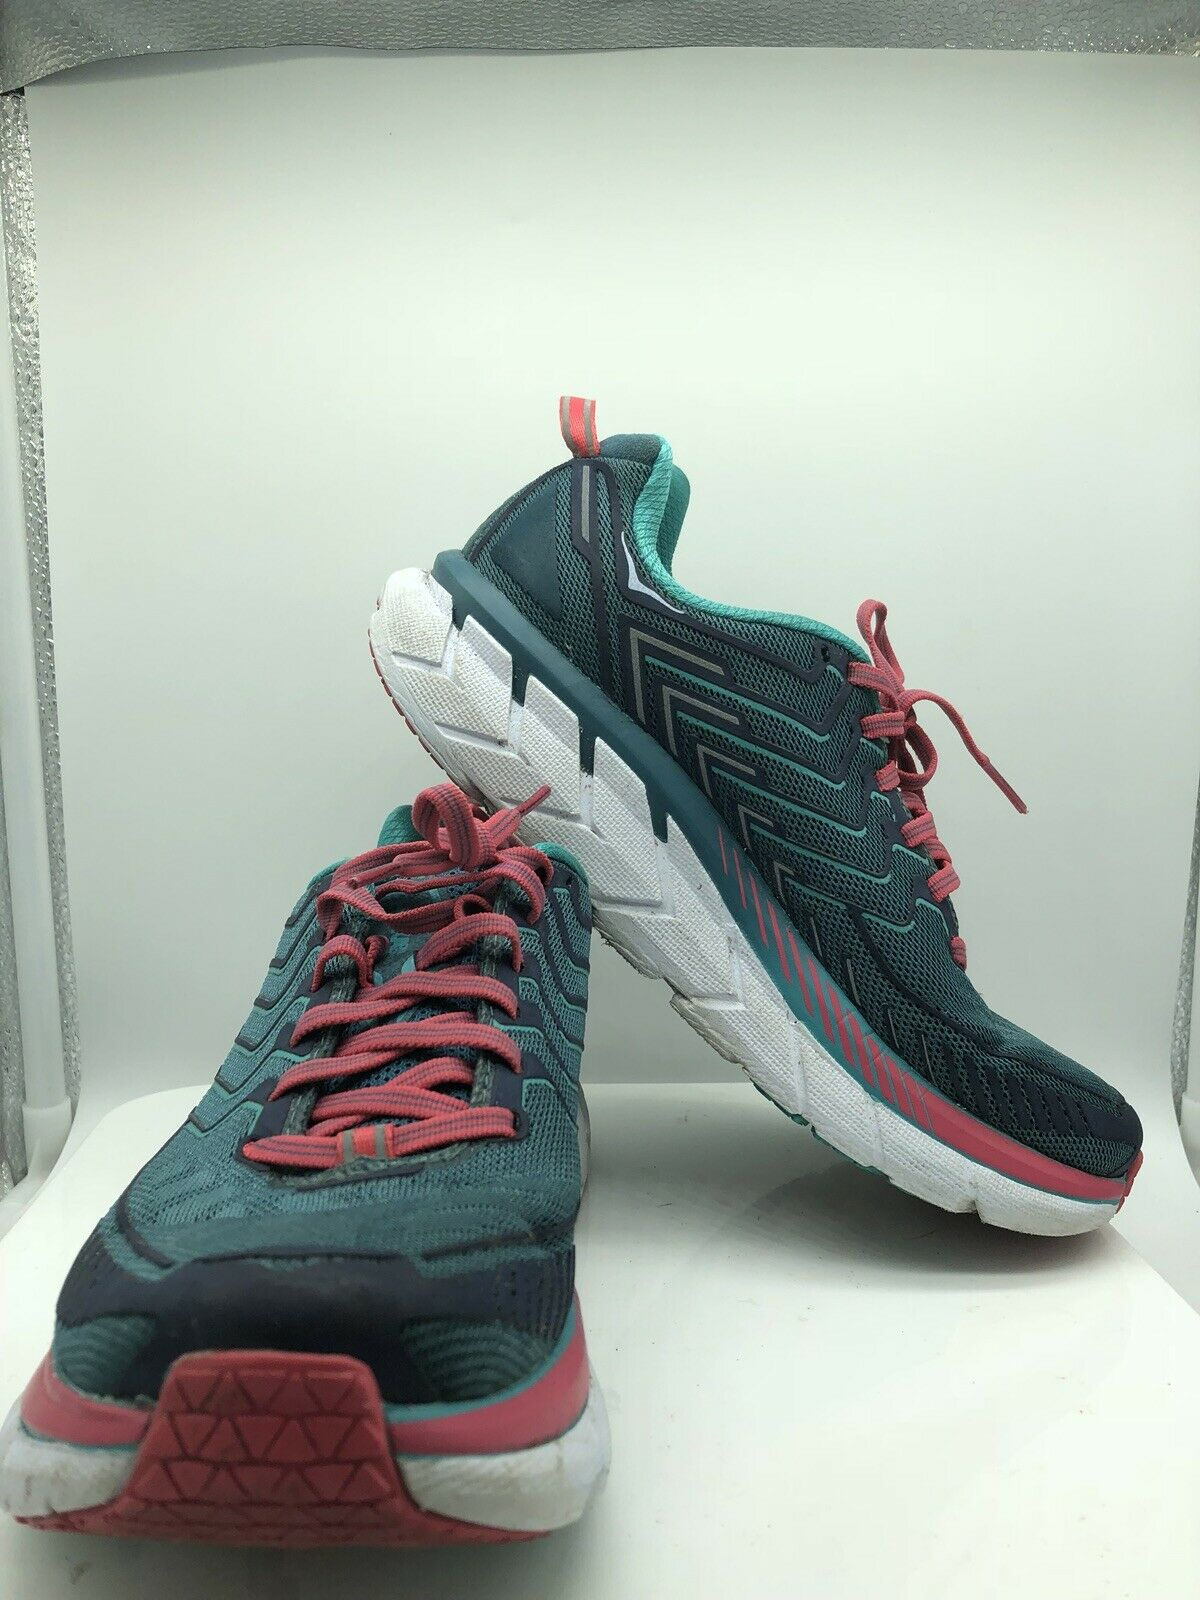 HOKA ONE ONE CLIFTON 4 Aqua Women's Running Sneakers shoes Size 7 Lace Up